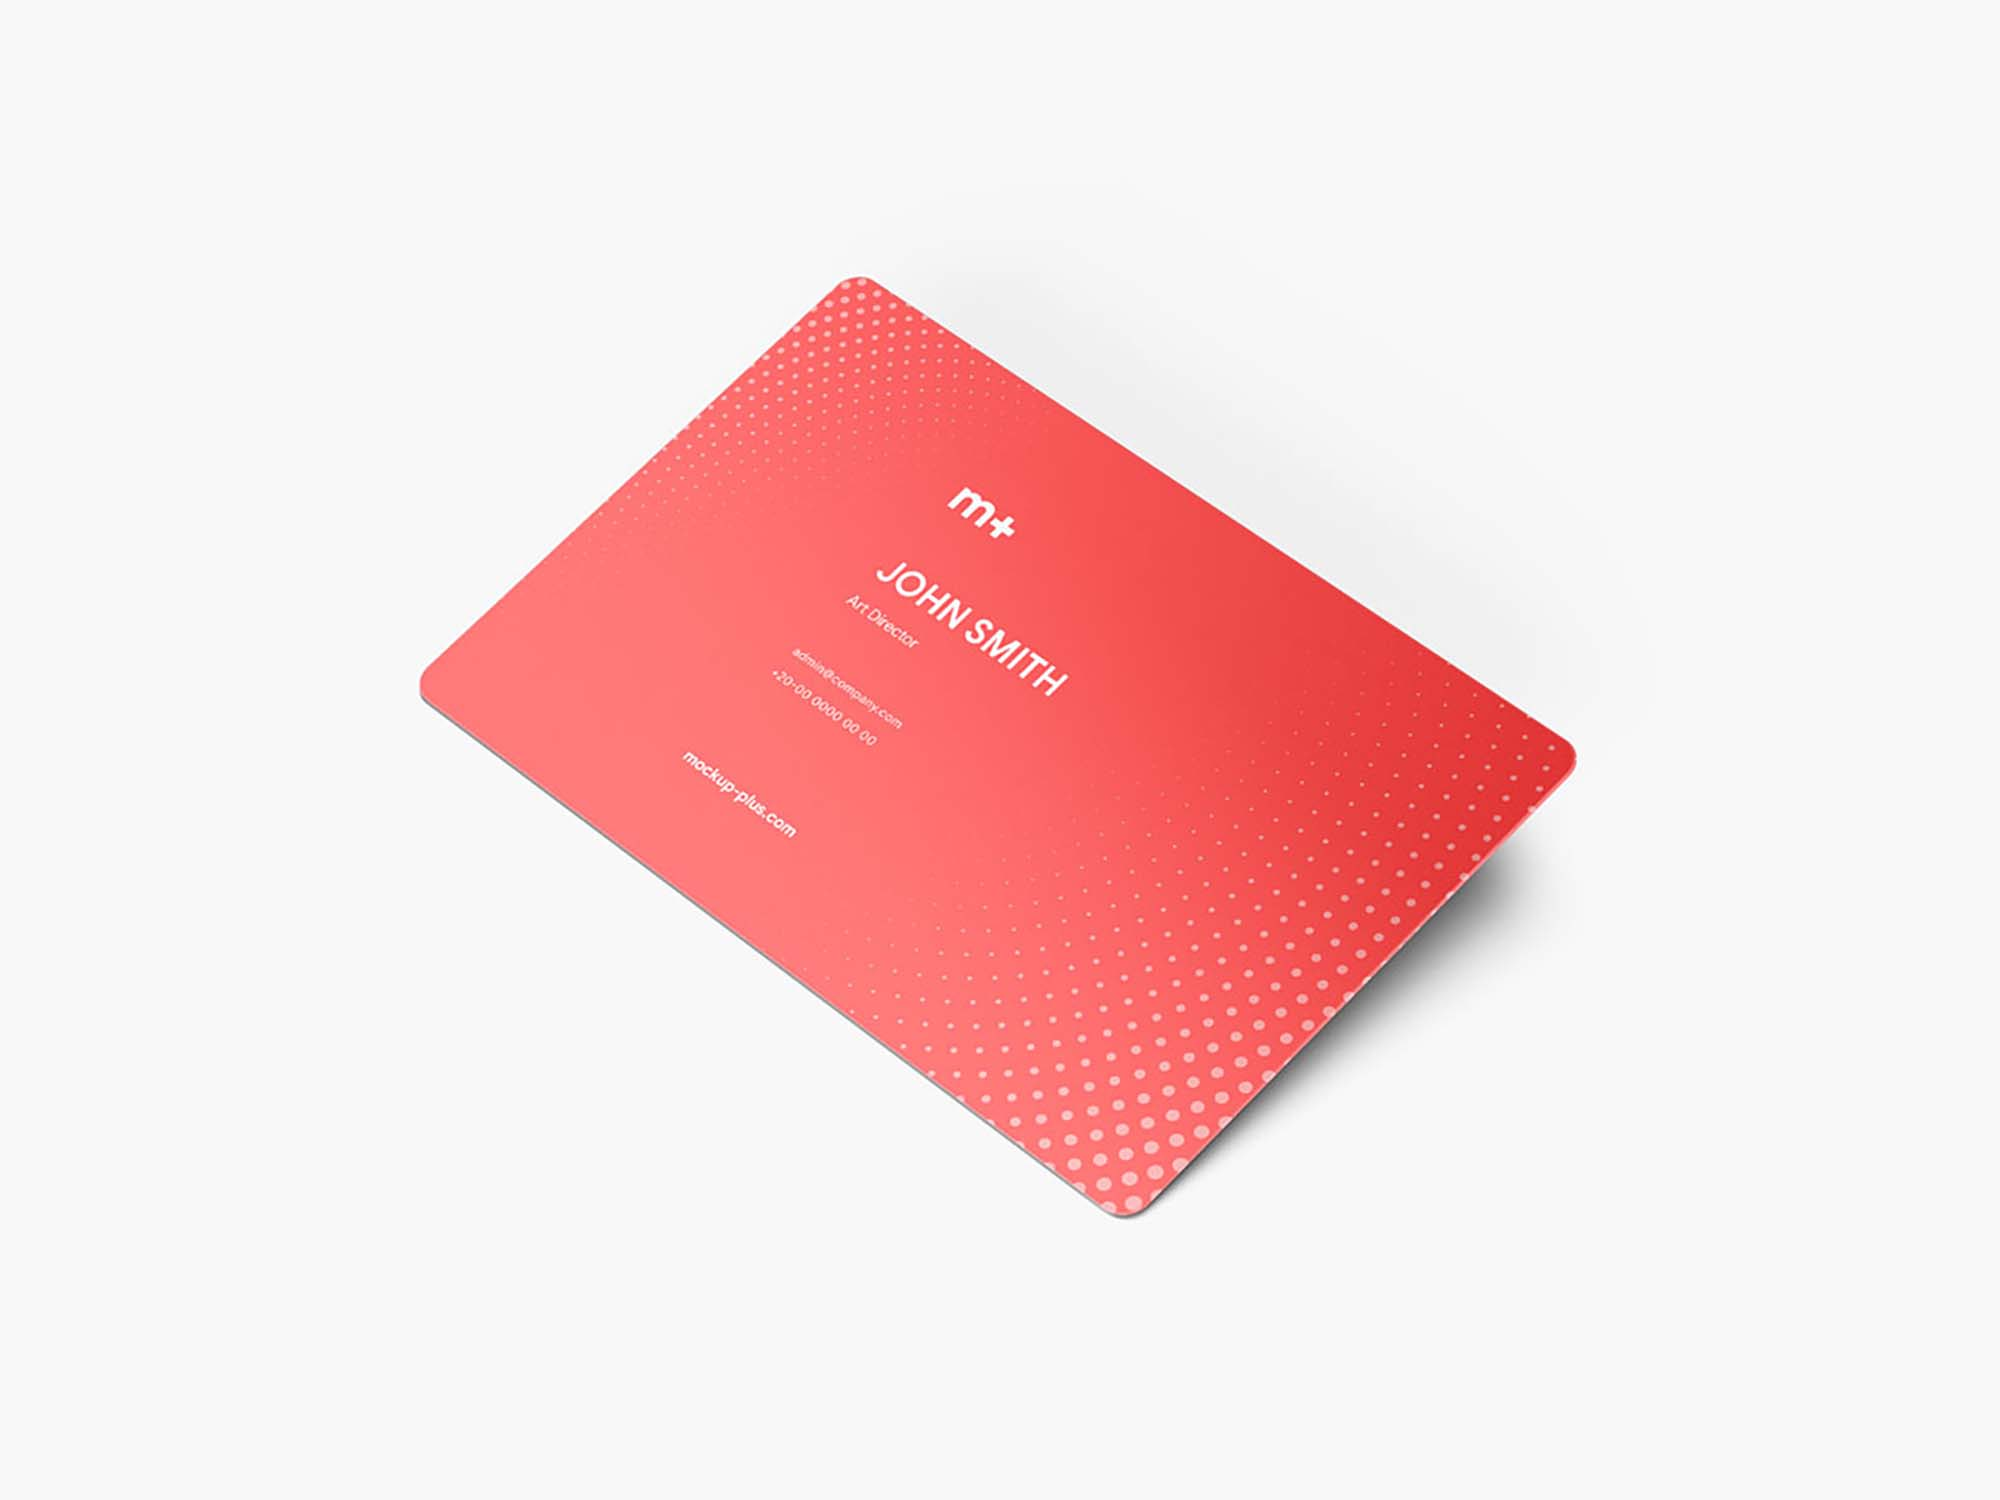 Round Corners Business Card Mockup